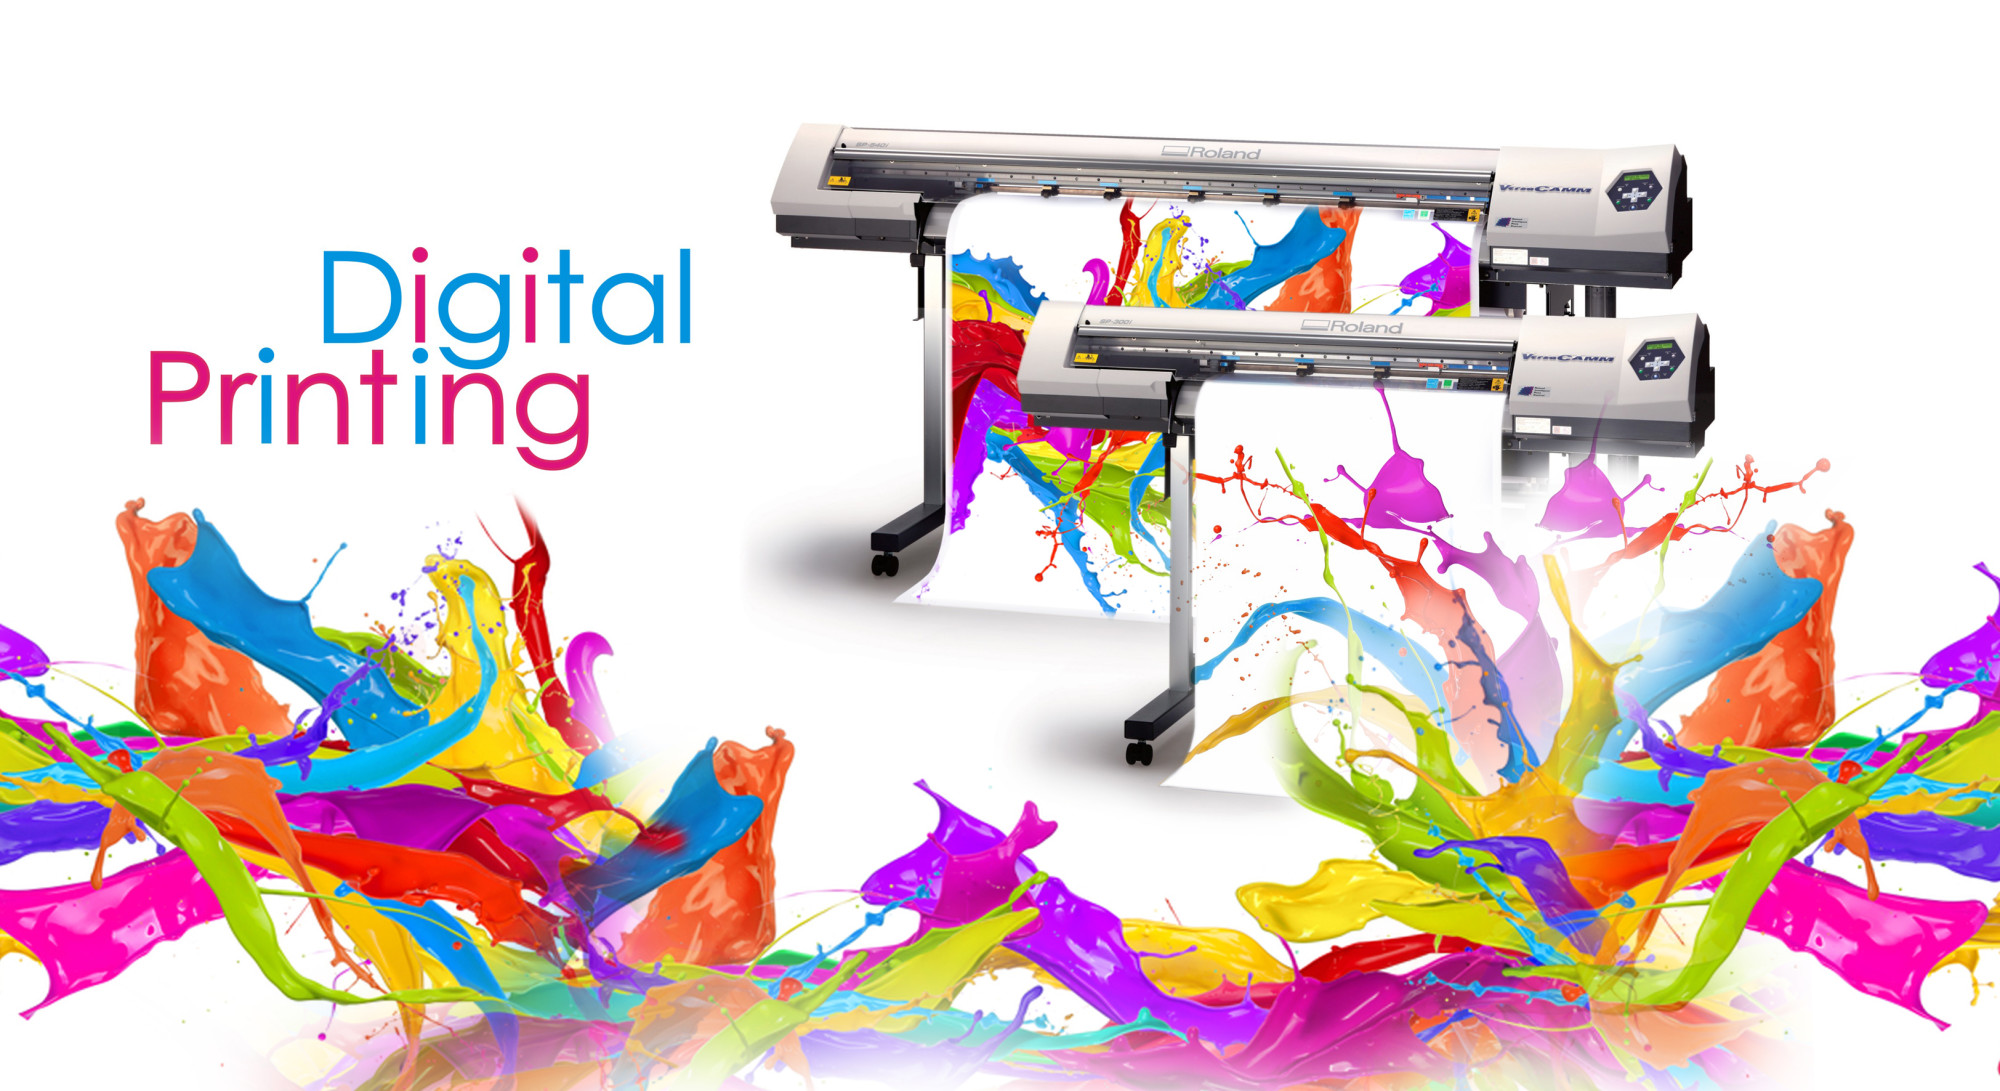 MDR Printing – Your One-Stop Shop